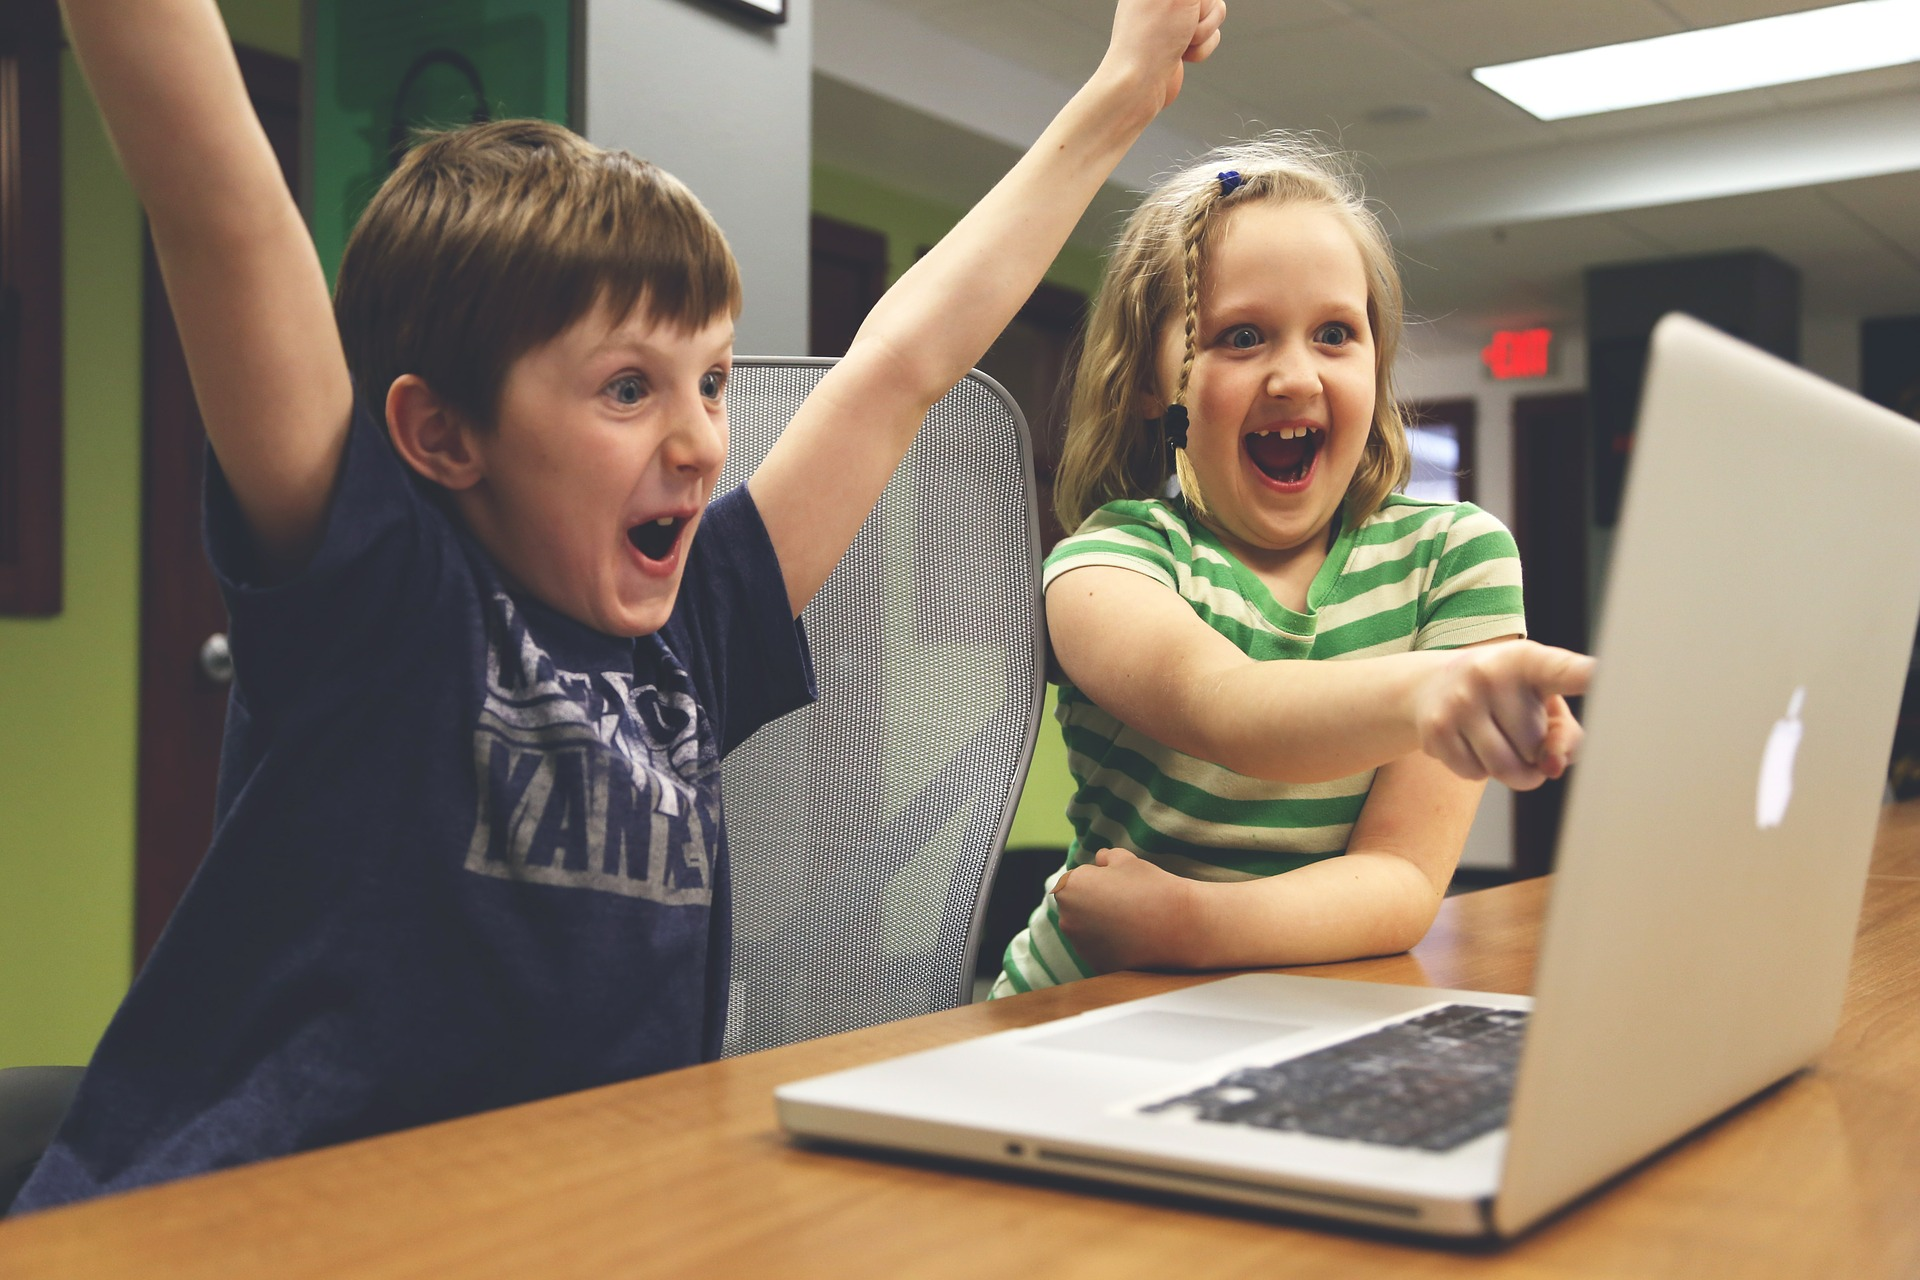 These children's reactions are surprisingly close to how you'll feel once we finish selling your home